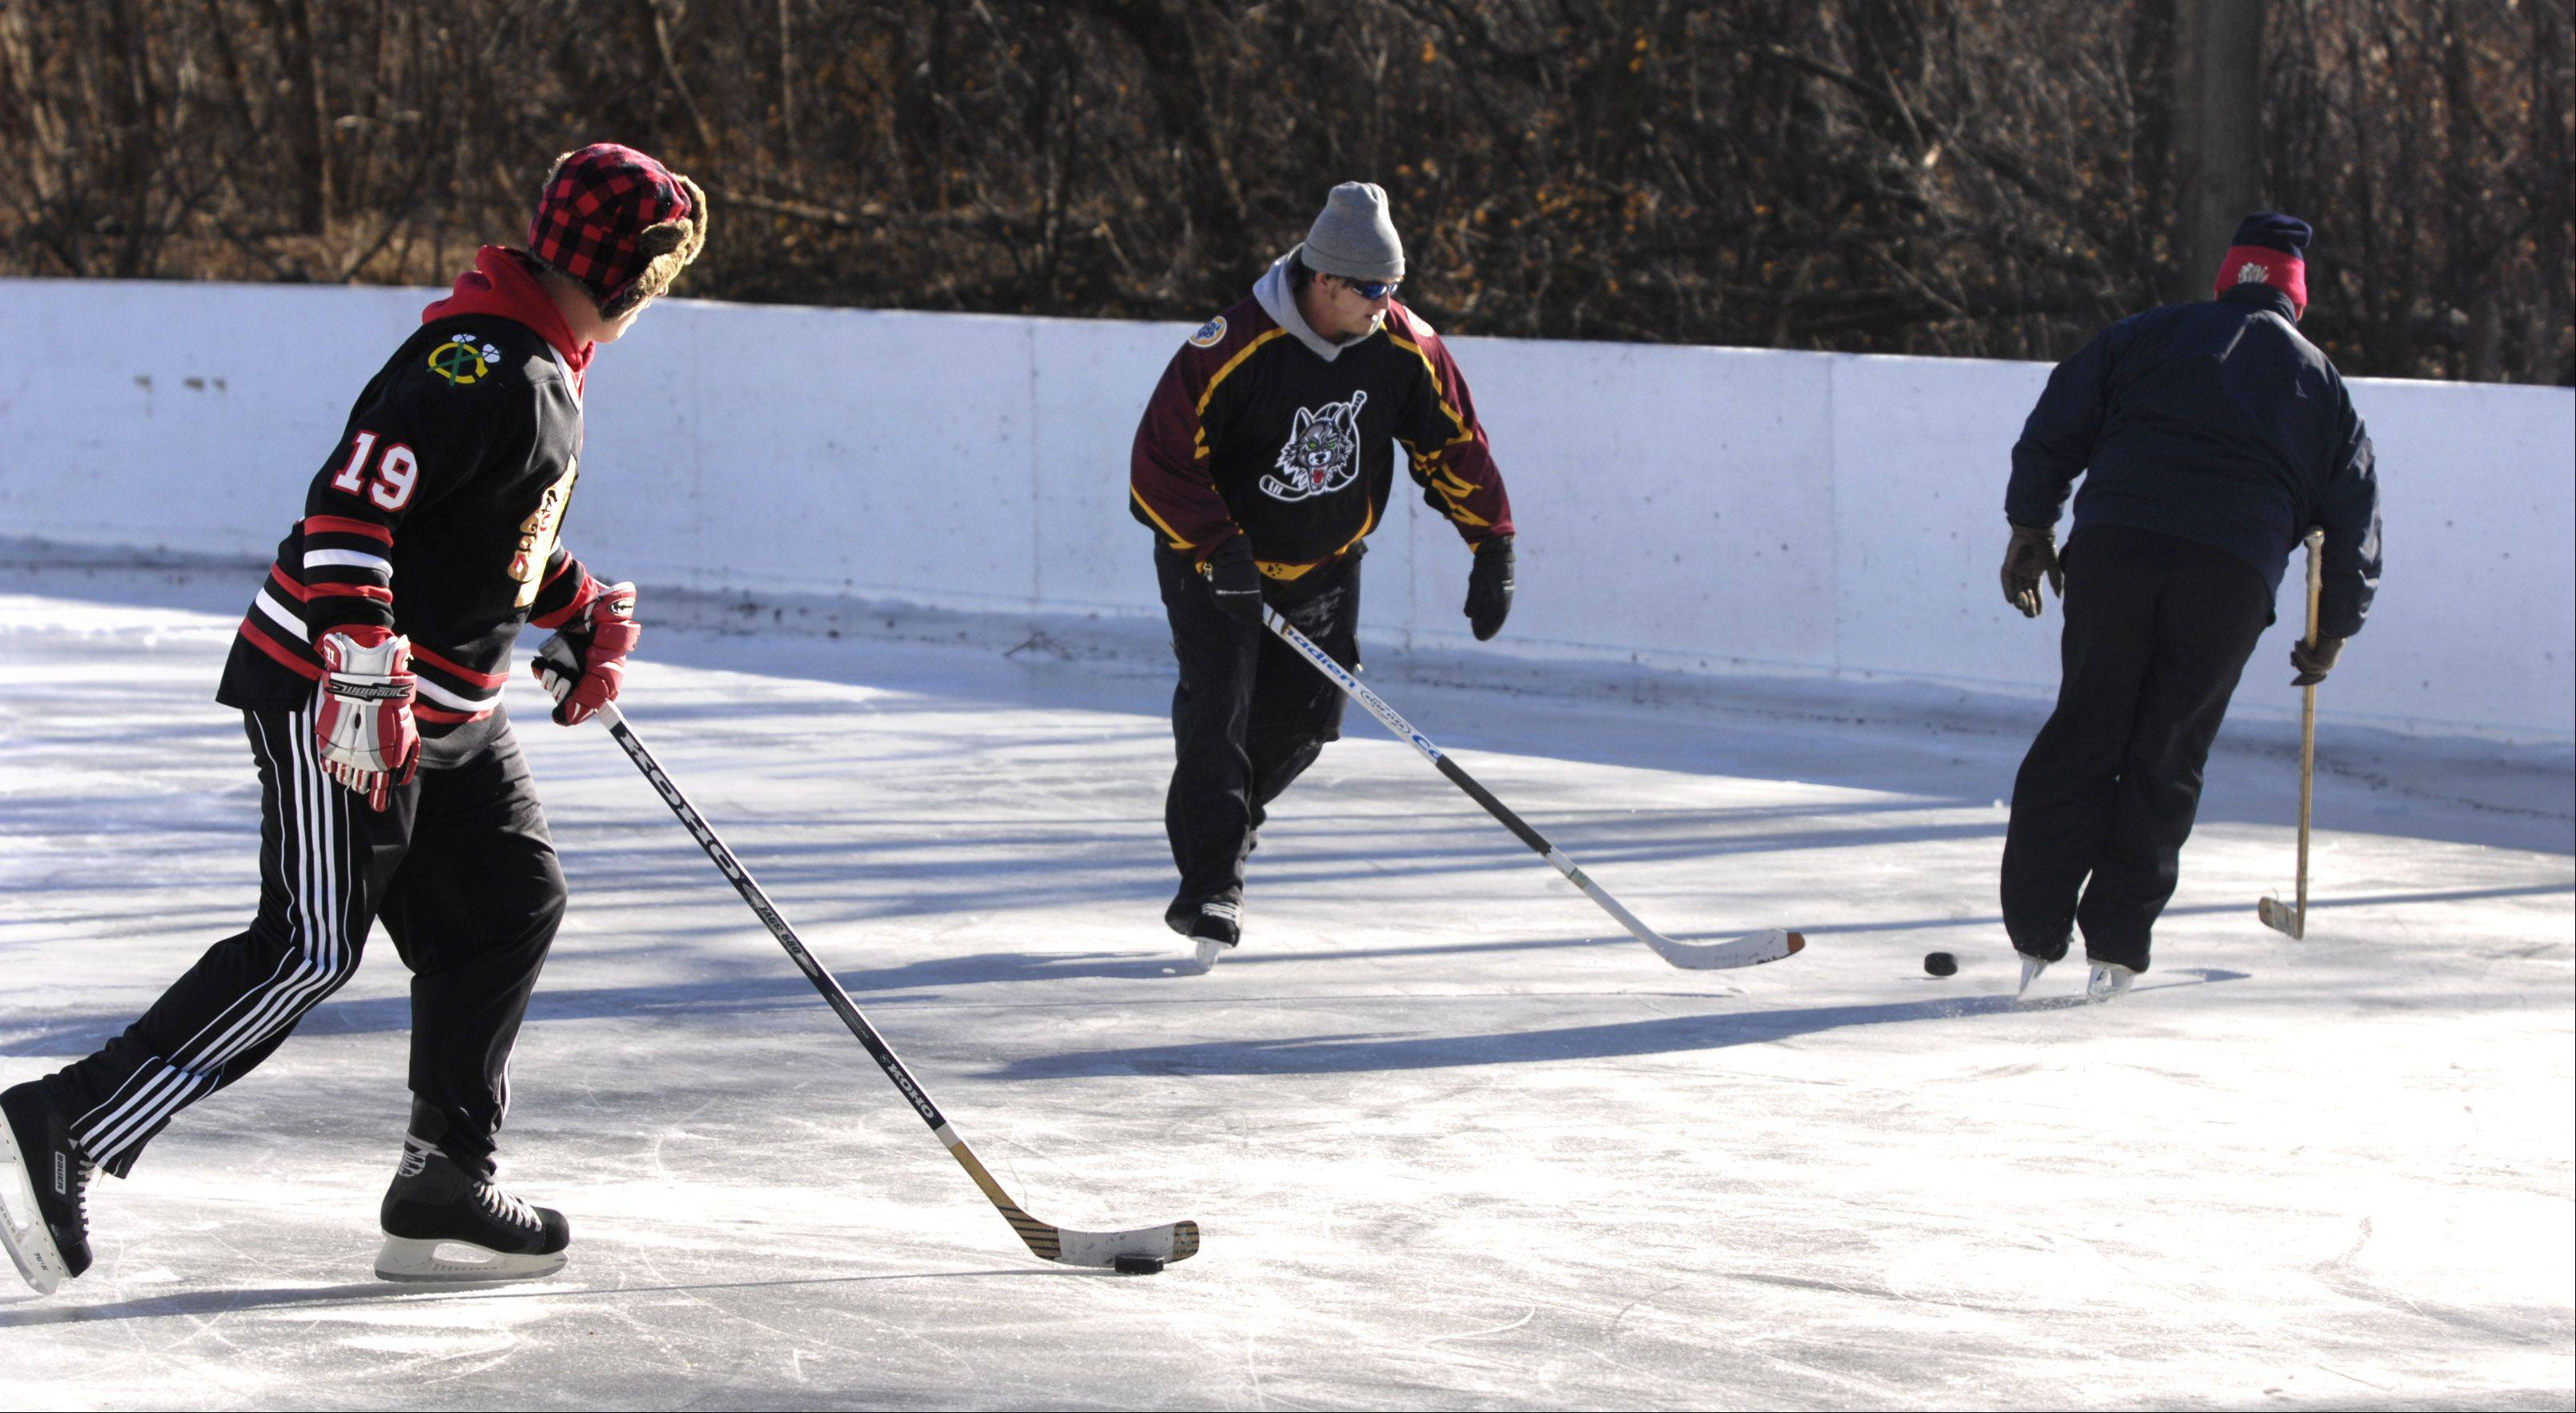 People play hockey at Frontier Park in Arlington Heights. The April election of people to oversee parks like this one is uncontested in Arlington Heights now that an 18-year-old Buffalo Grove student's nominating petitions have been ruled to lack sufficient signatures.